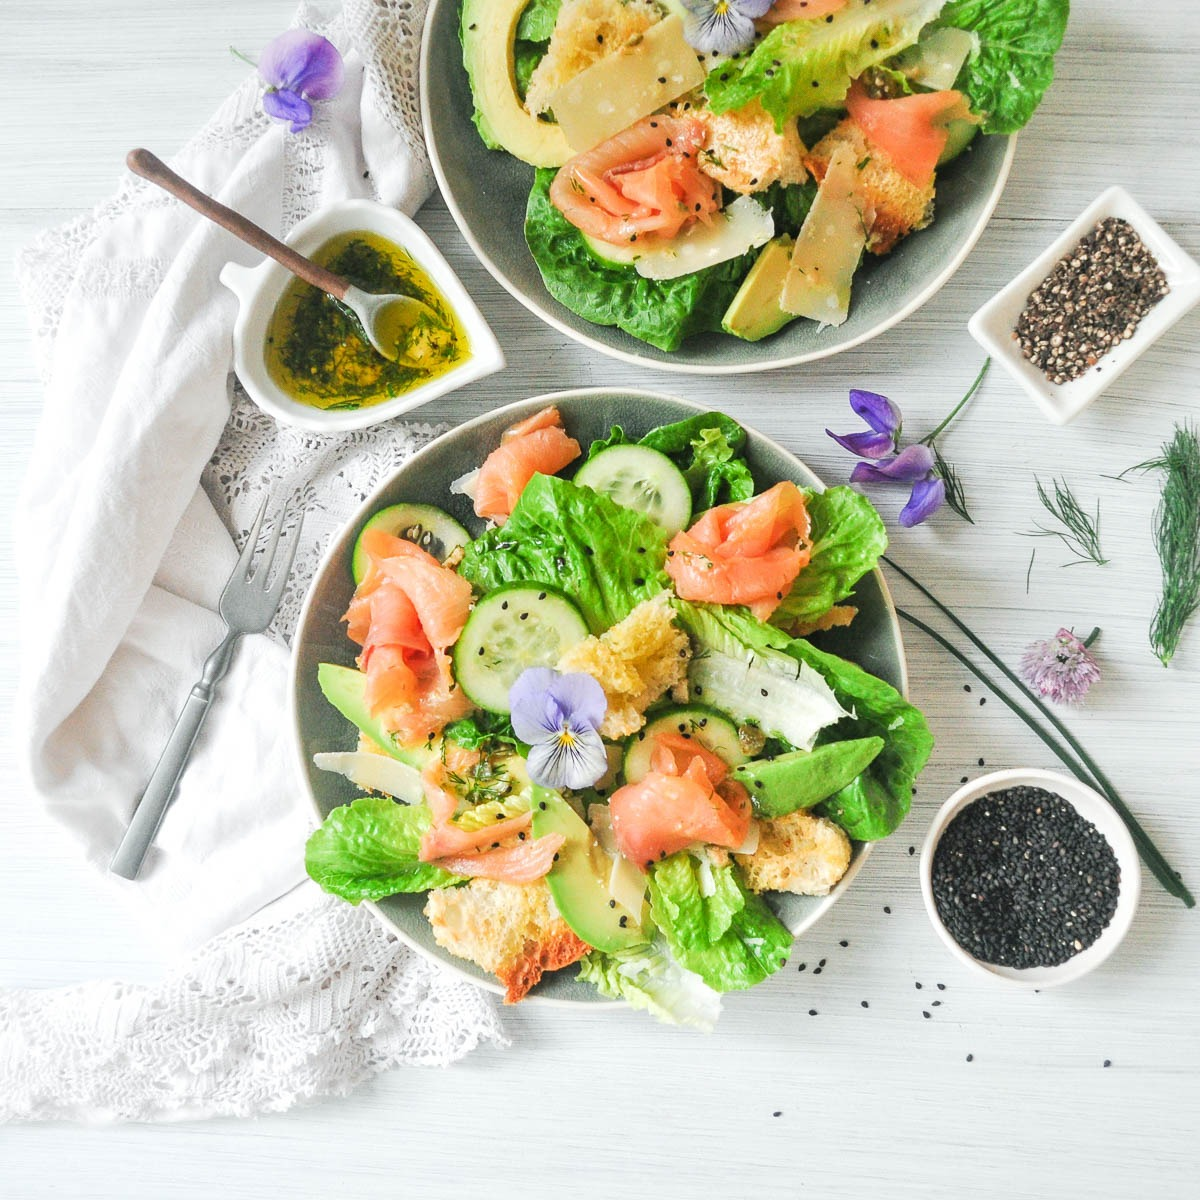 smoked salmon caesar salad on blue plate decorated with purple edible flowers on and around the salad